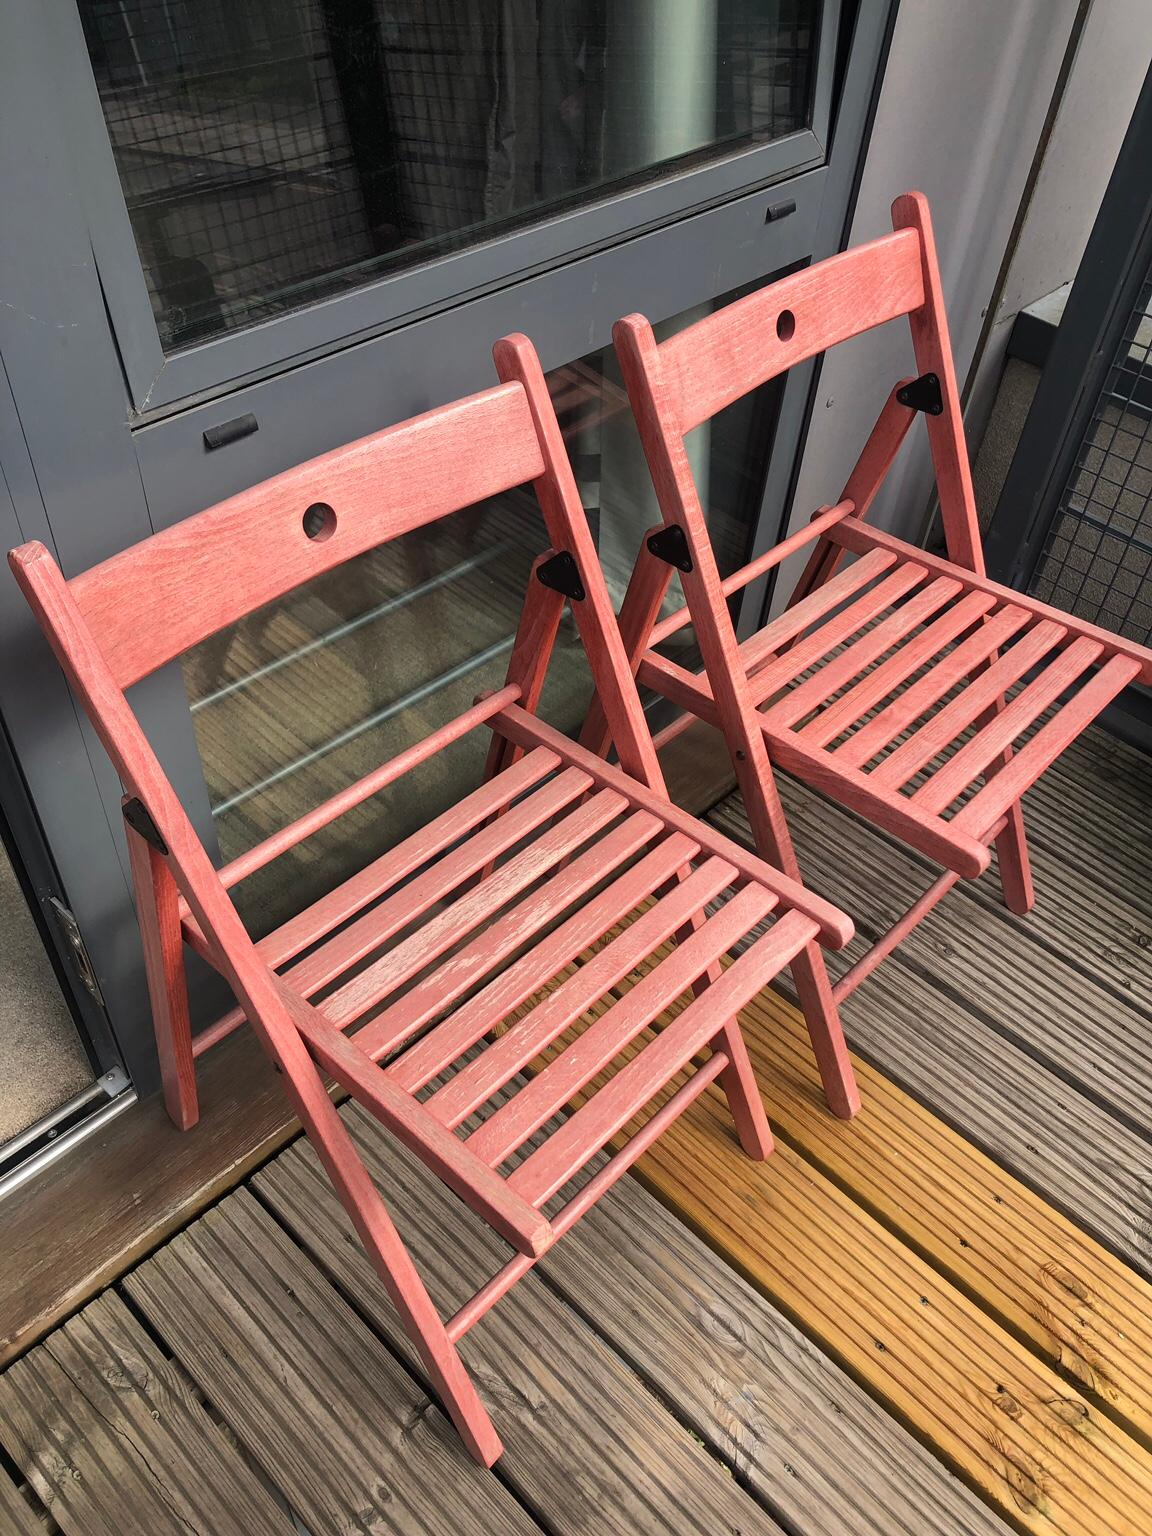 2 IKEA TERJE FOLD WOODEN CHAIR OUTDOOR